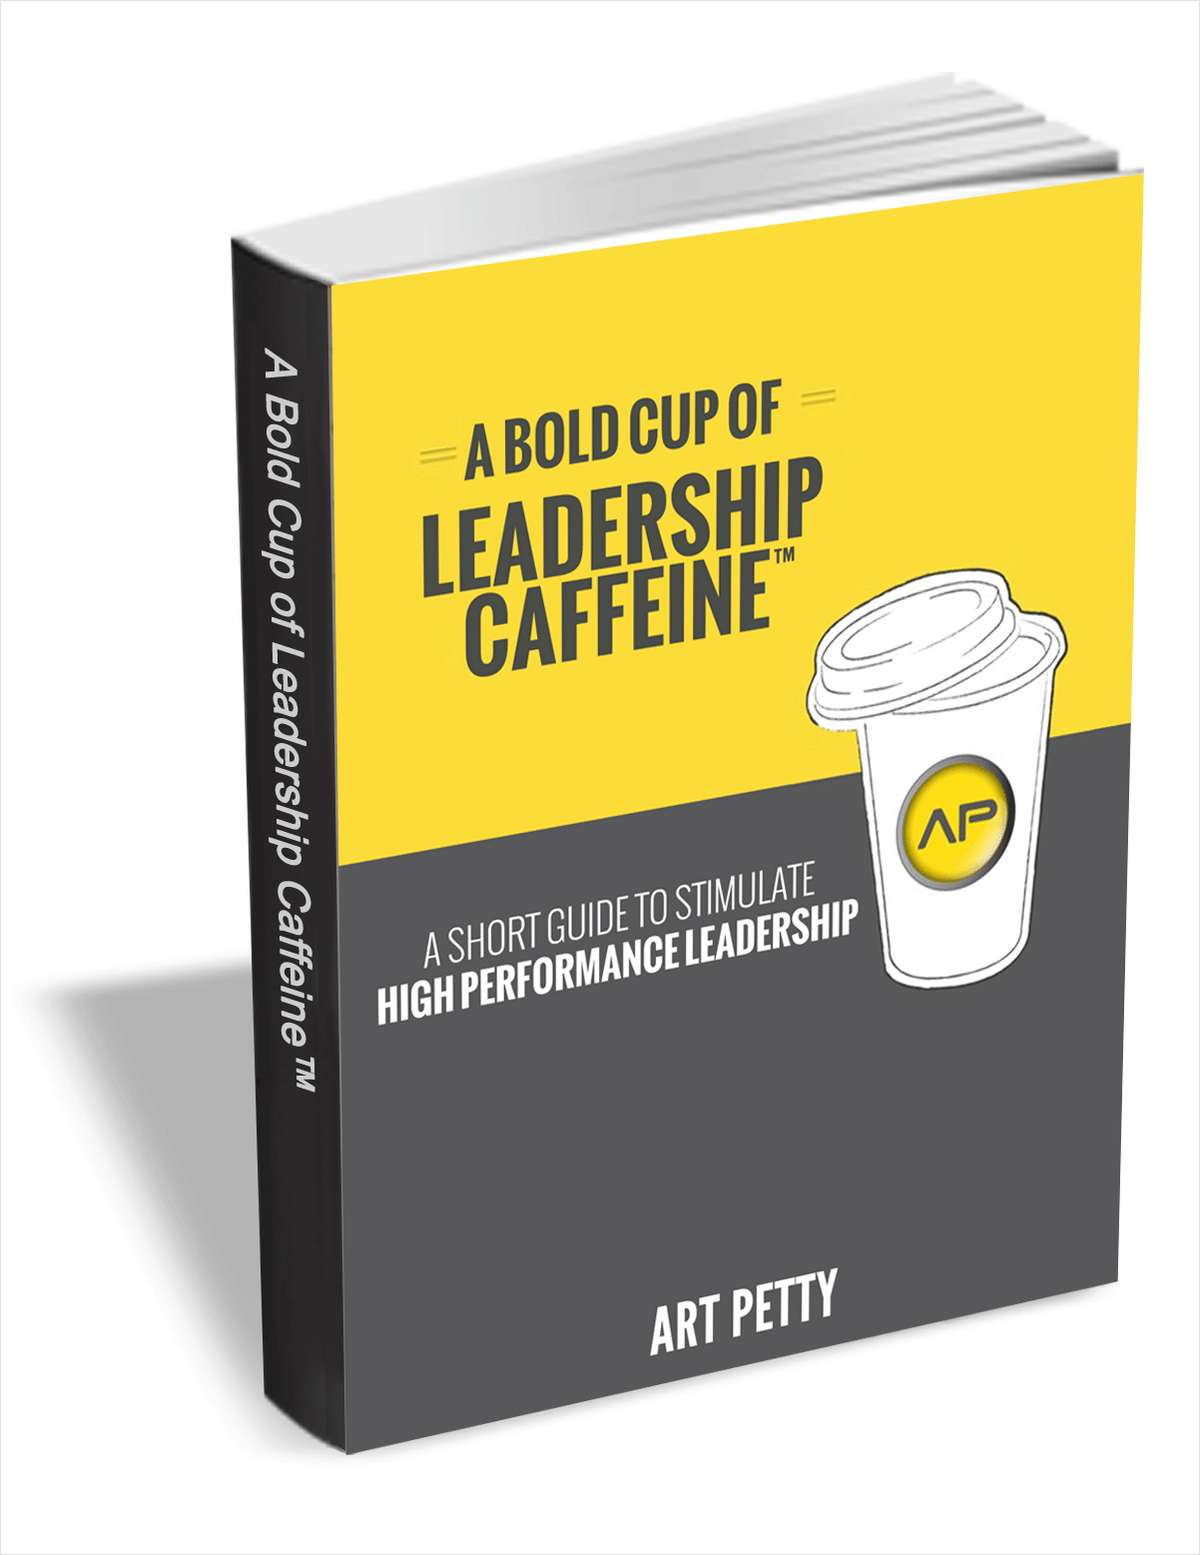 A Bold Cup of Leadership Caffeine - A Short Guide to Stimulate High Performance Leadership